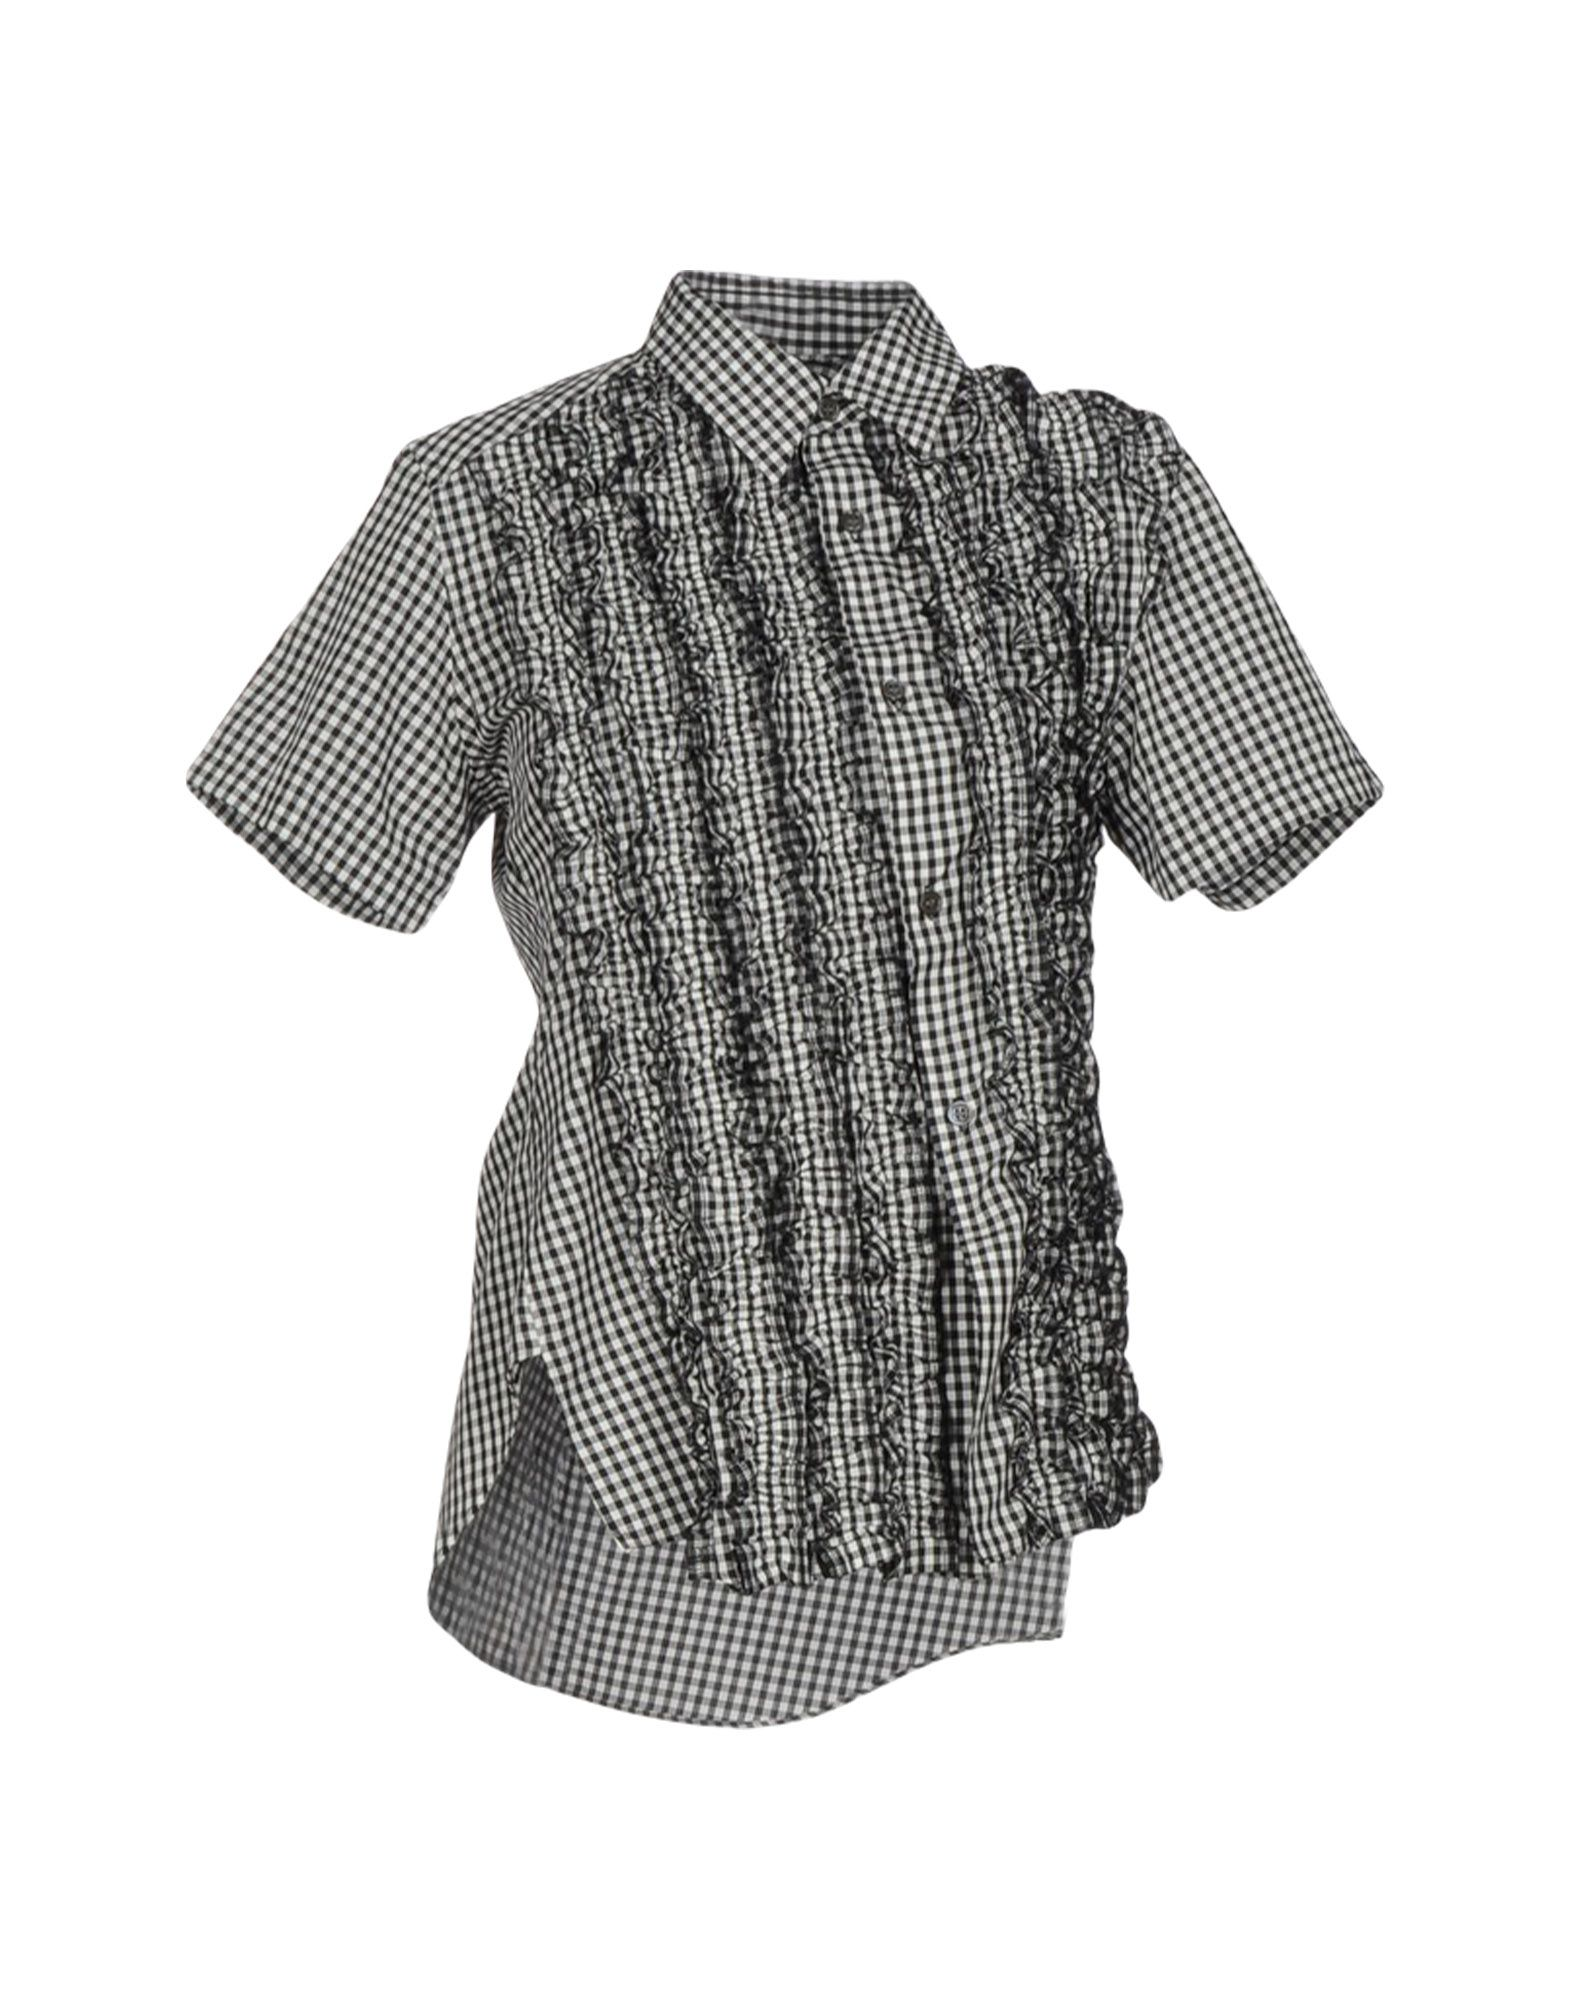 JUPE by JACKIE COMME DES GARÇONS Pубашка jackie kay fiere